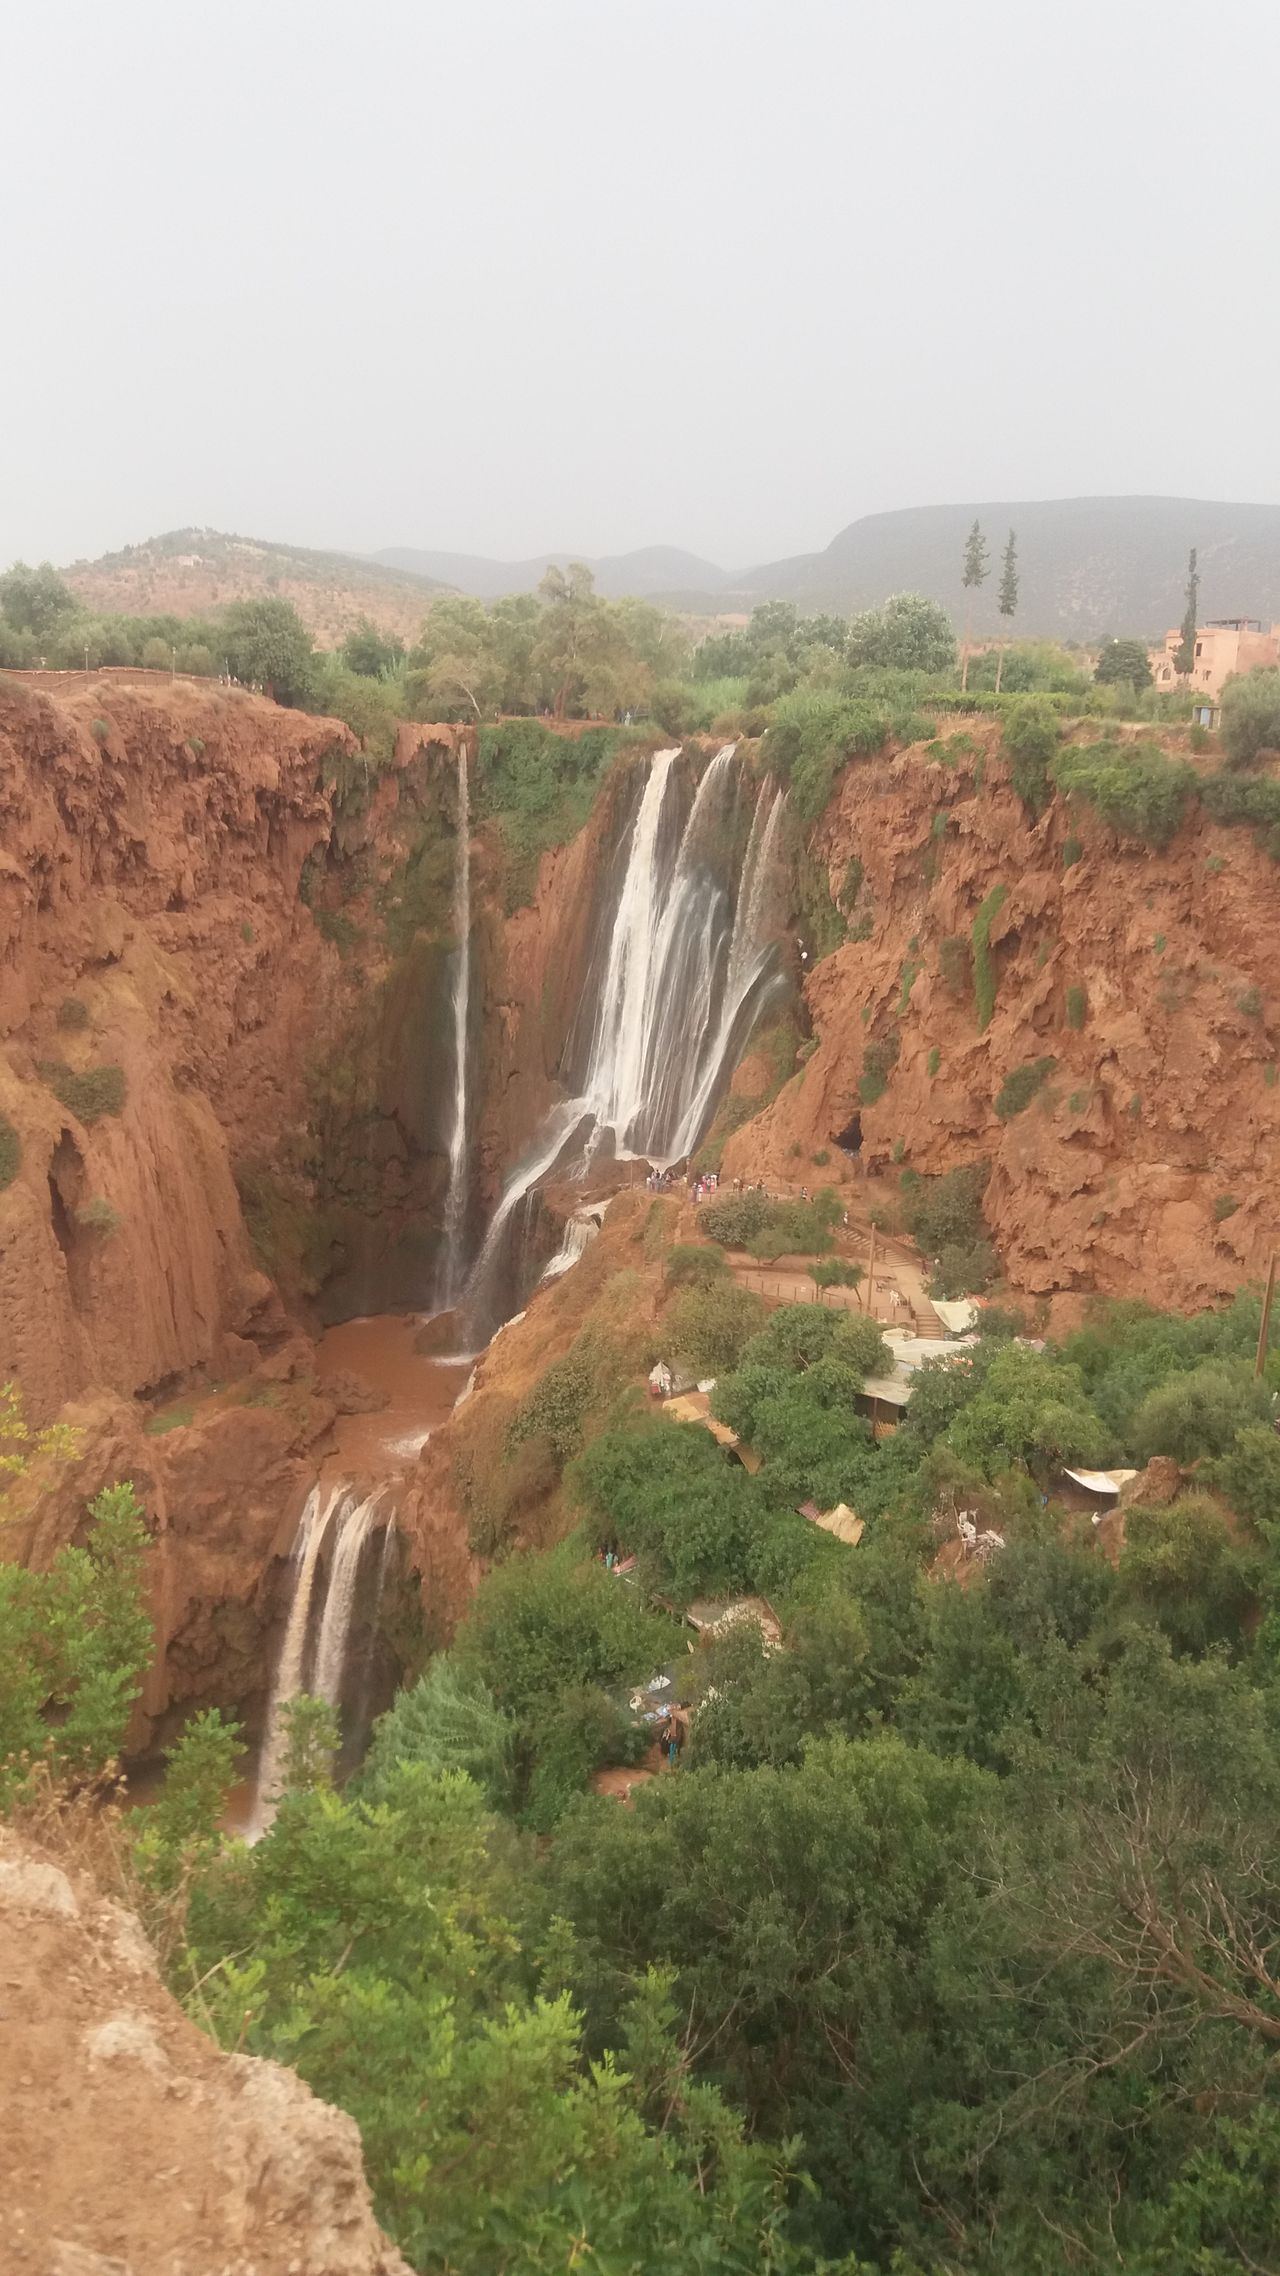 Beauty Beauty In Nature Cliff Environment Environmental Conservation Igniting Morning Light Morocco Morroco Motion Nature No People Outdoors Ouzoud Ouzoud Falls River Rock - Object Scenics Social Issues Solo Traveller Tourism Travel Destinations Vacations Water Waterfall